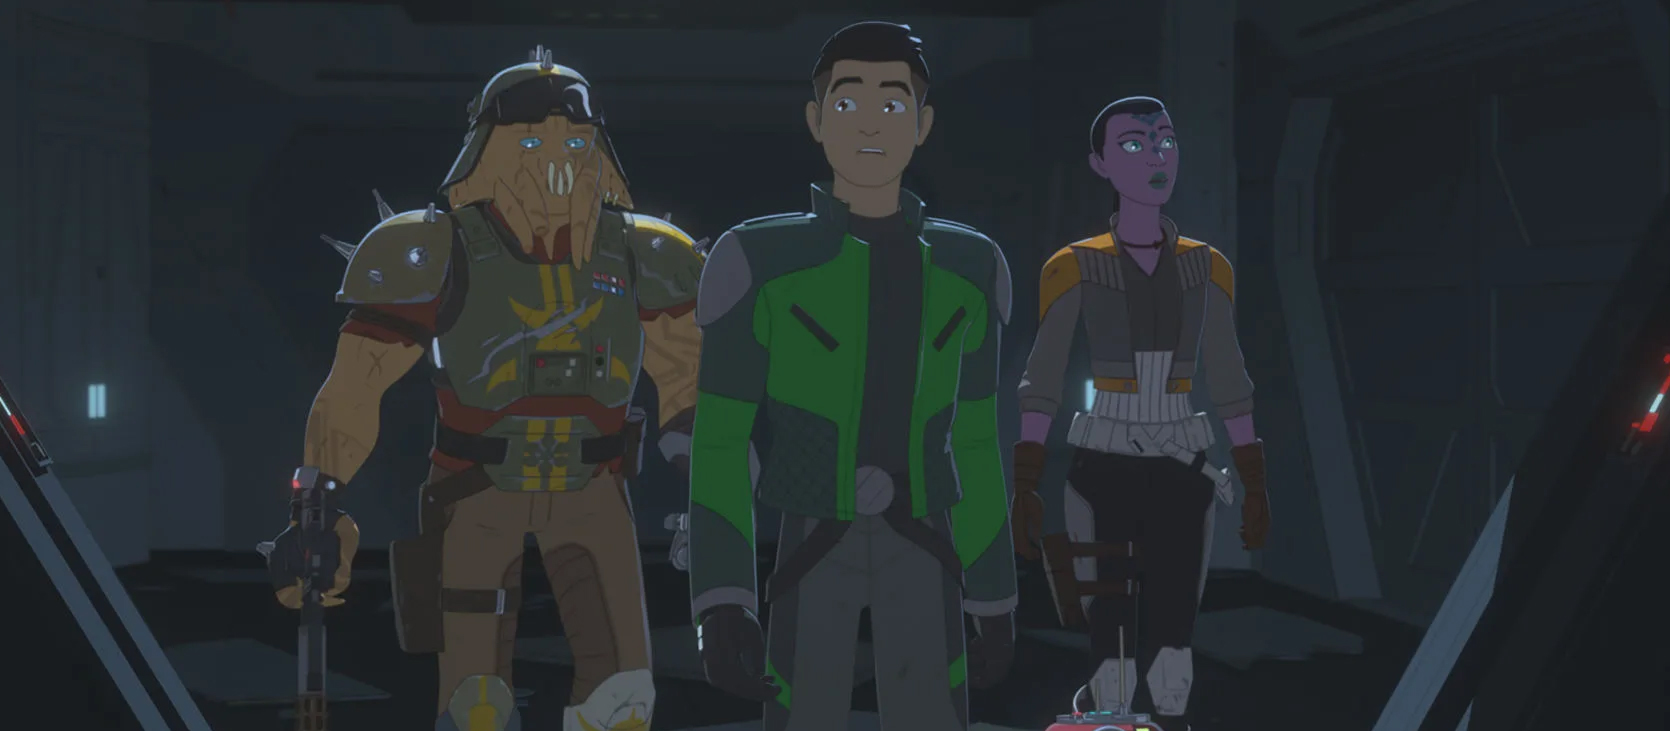 """'Star Wars Resistance' Gets Tangled in a Web of Dilemmas in """"A Quick Salvage Run"""""""